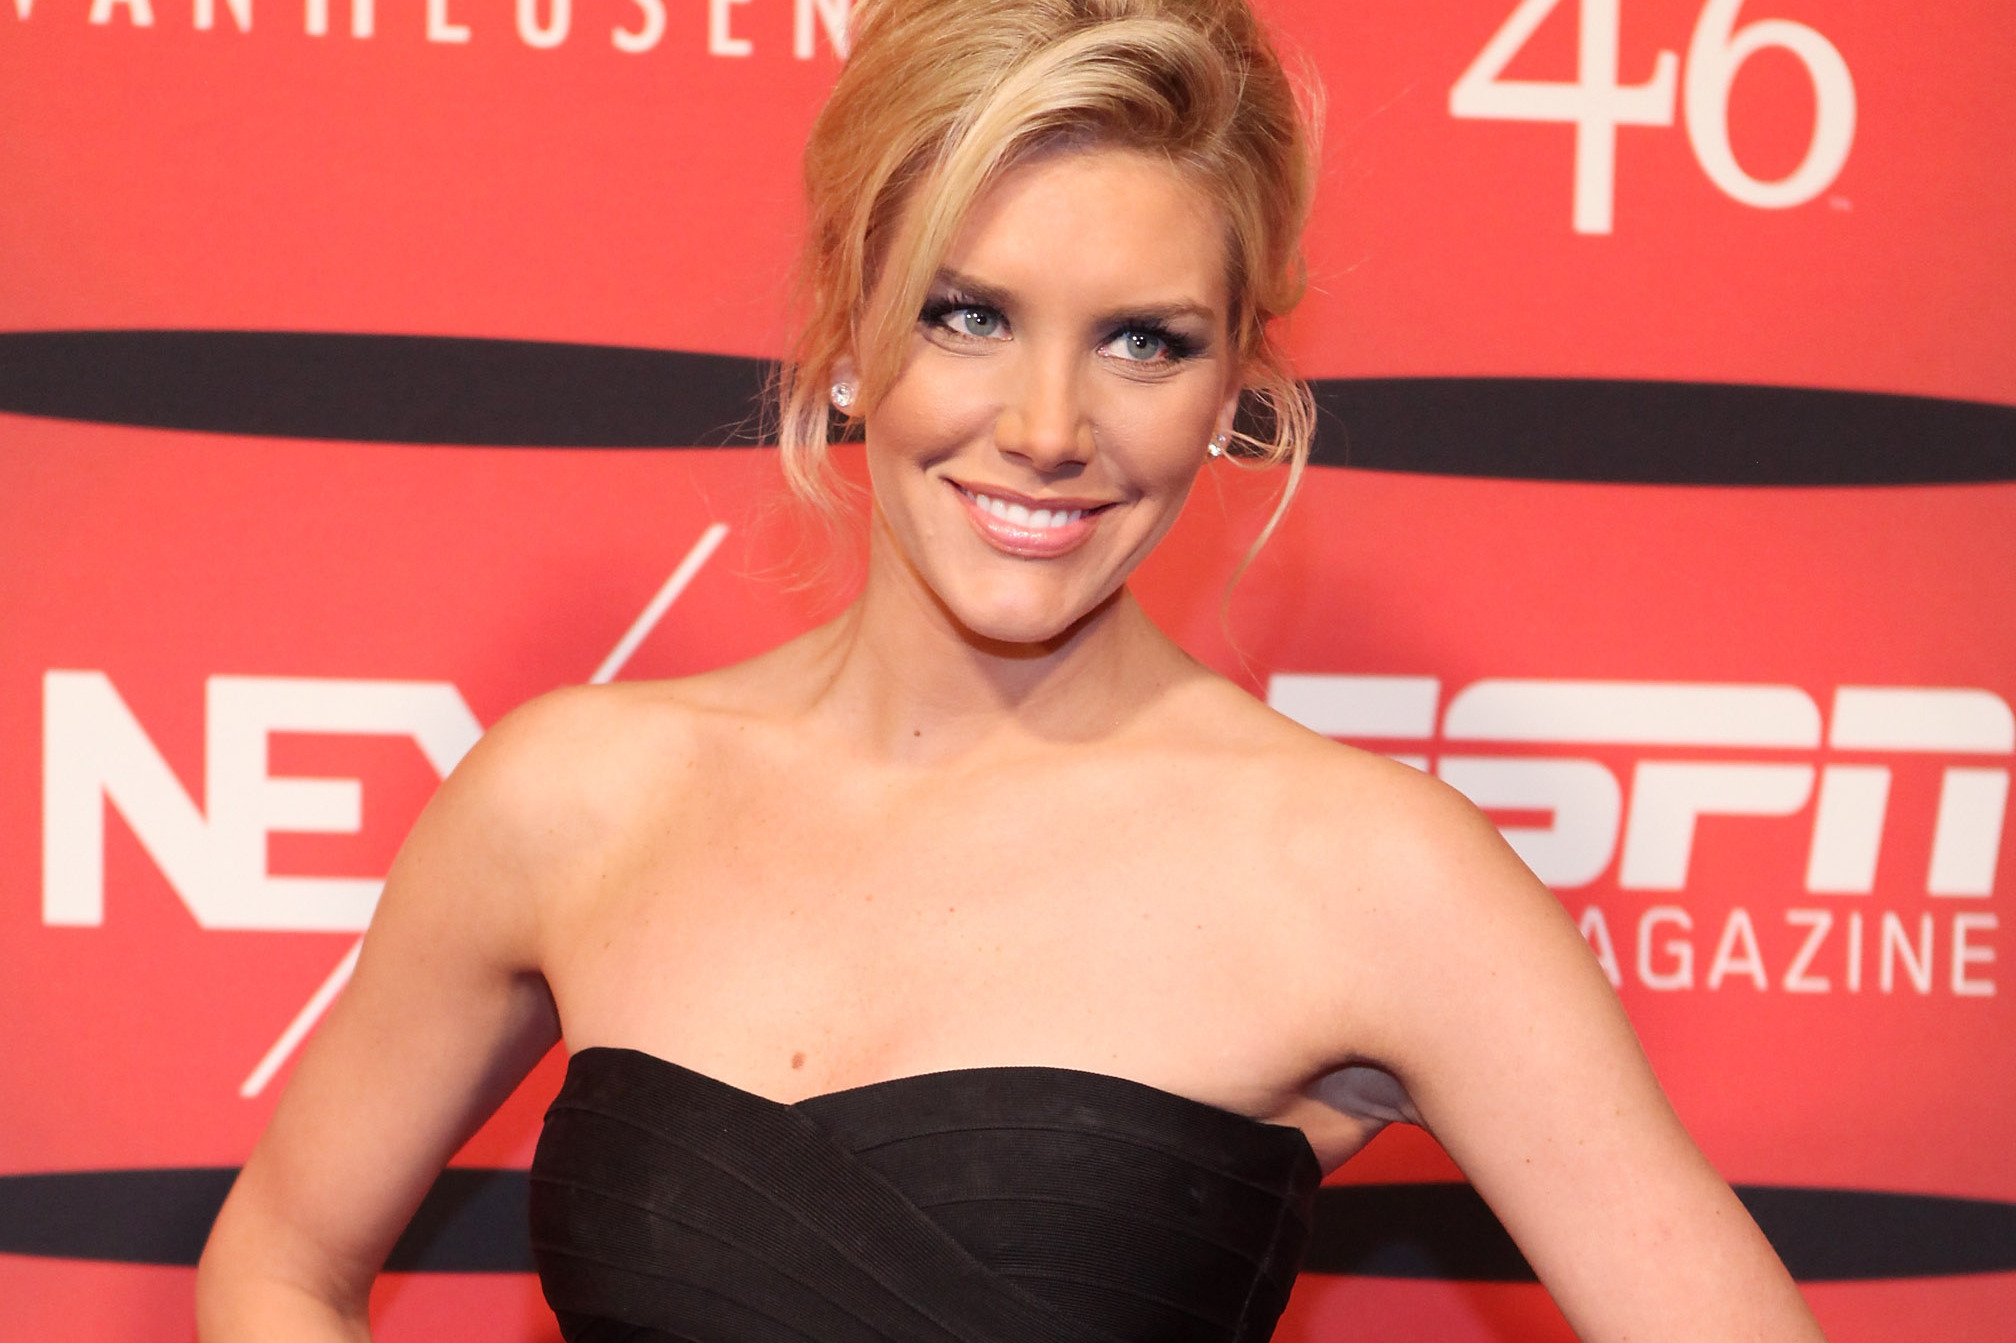 Charissa Thompson Reportedly Latest Star To Leave Espn For Fox Sports Bleacher Report Latest News Videos And Highlights